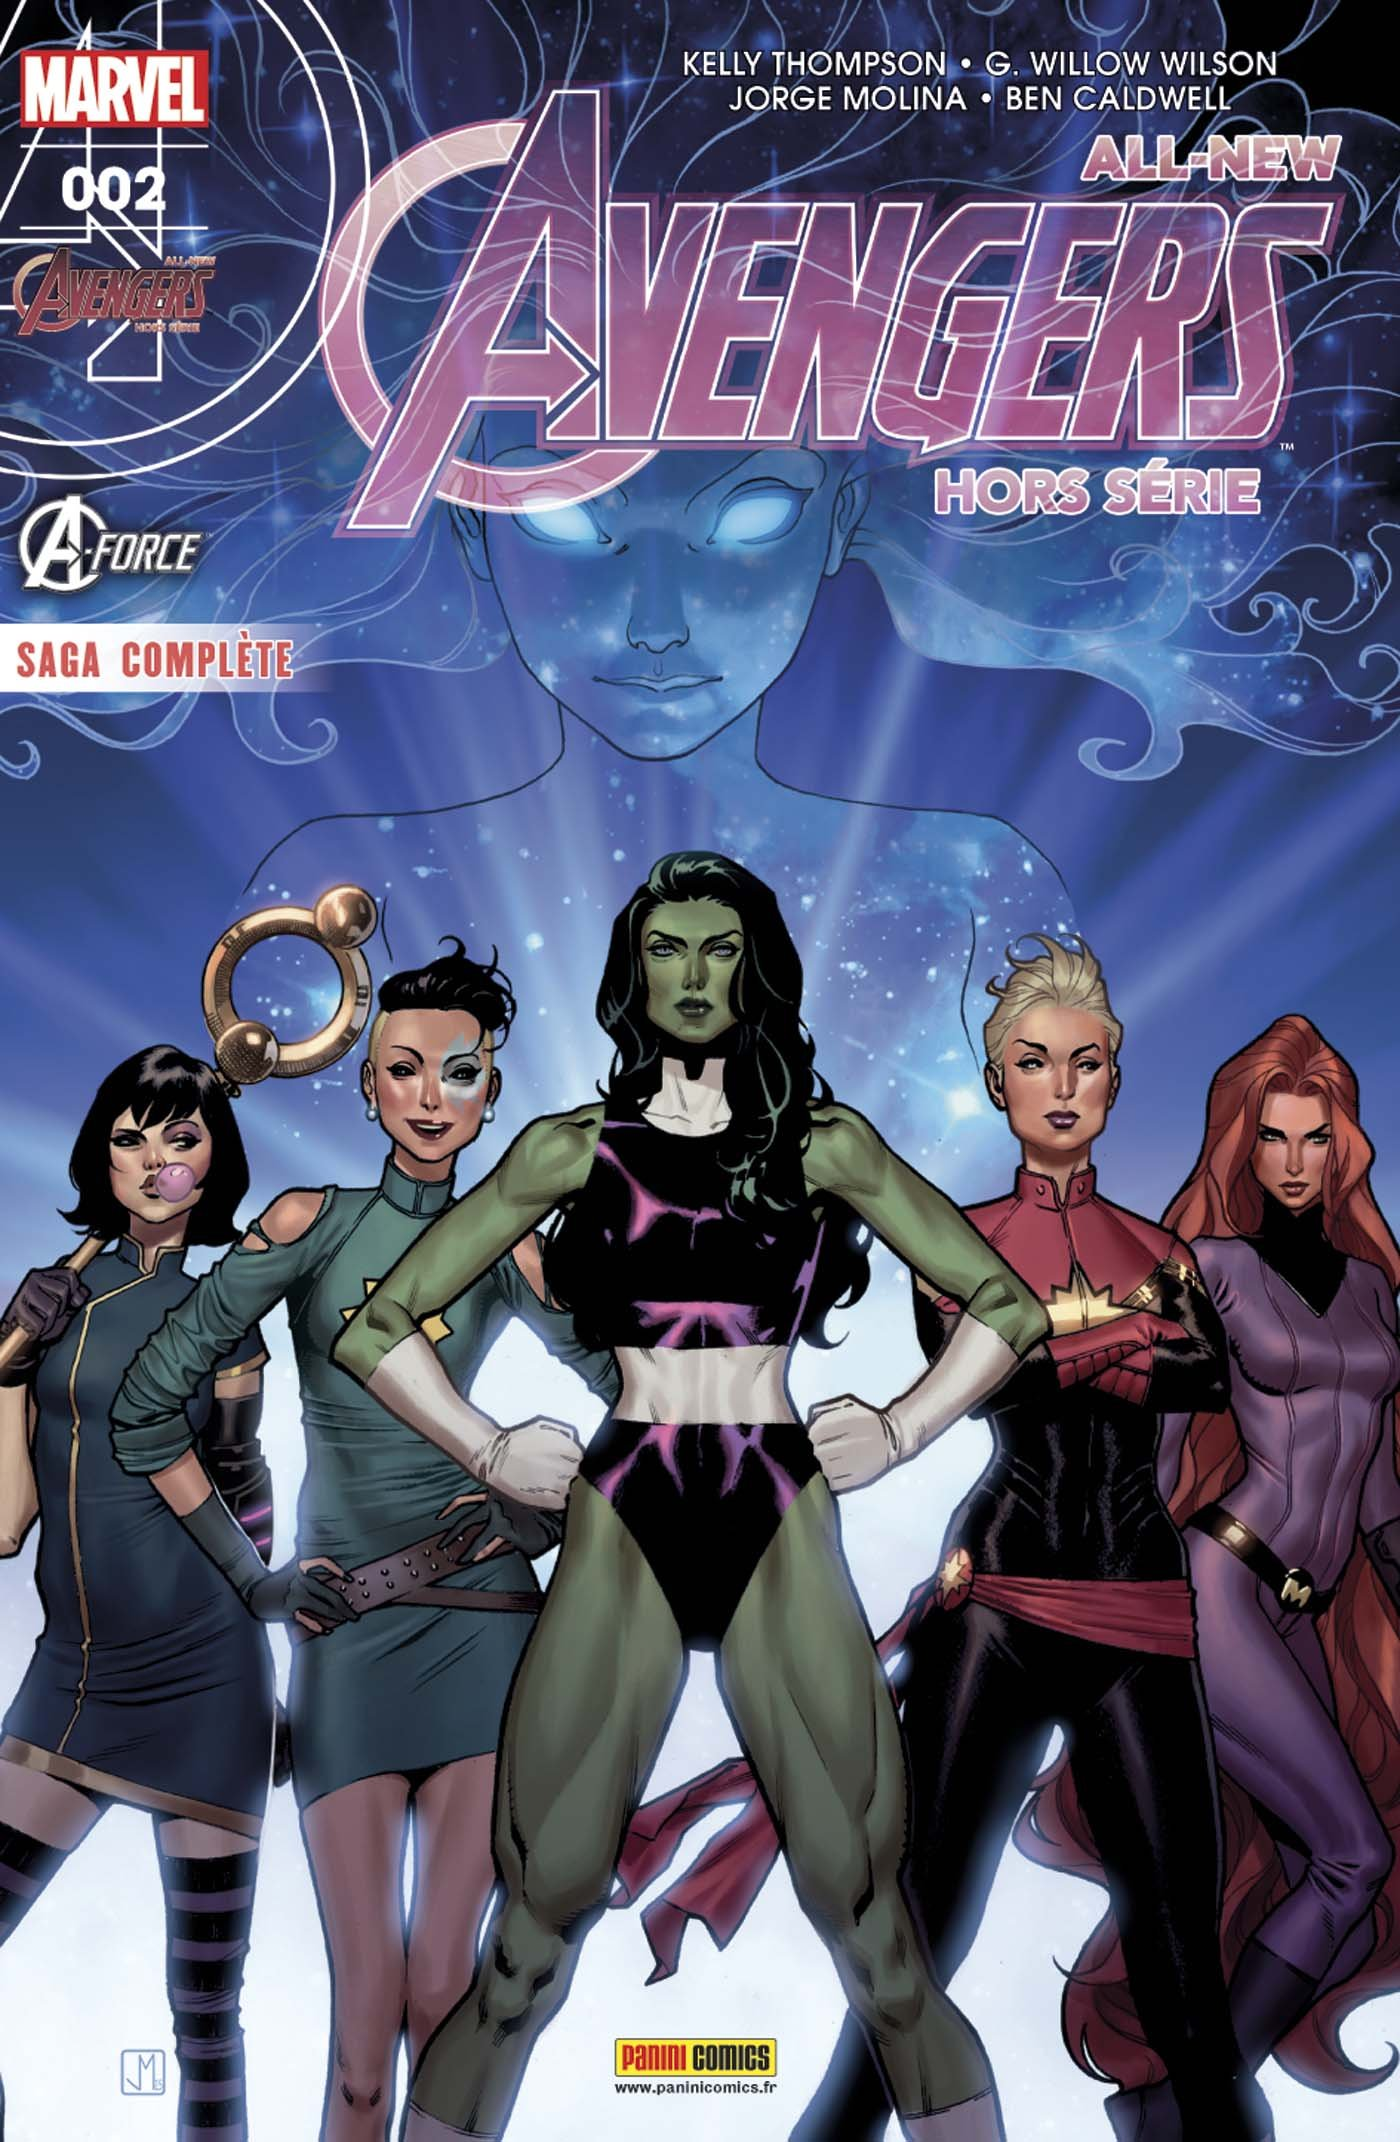 All-New Avengers Hors Série 2 - A-FORCE